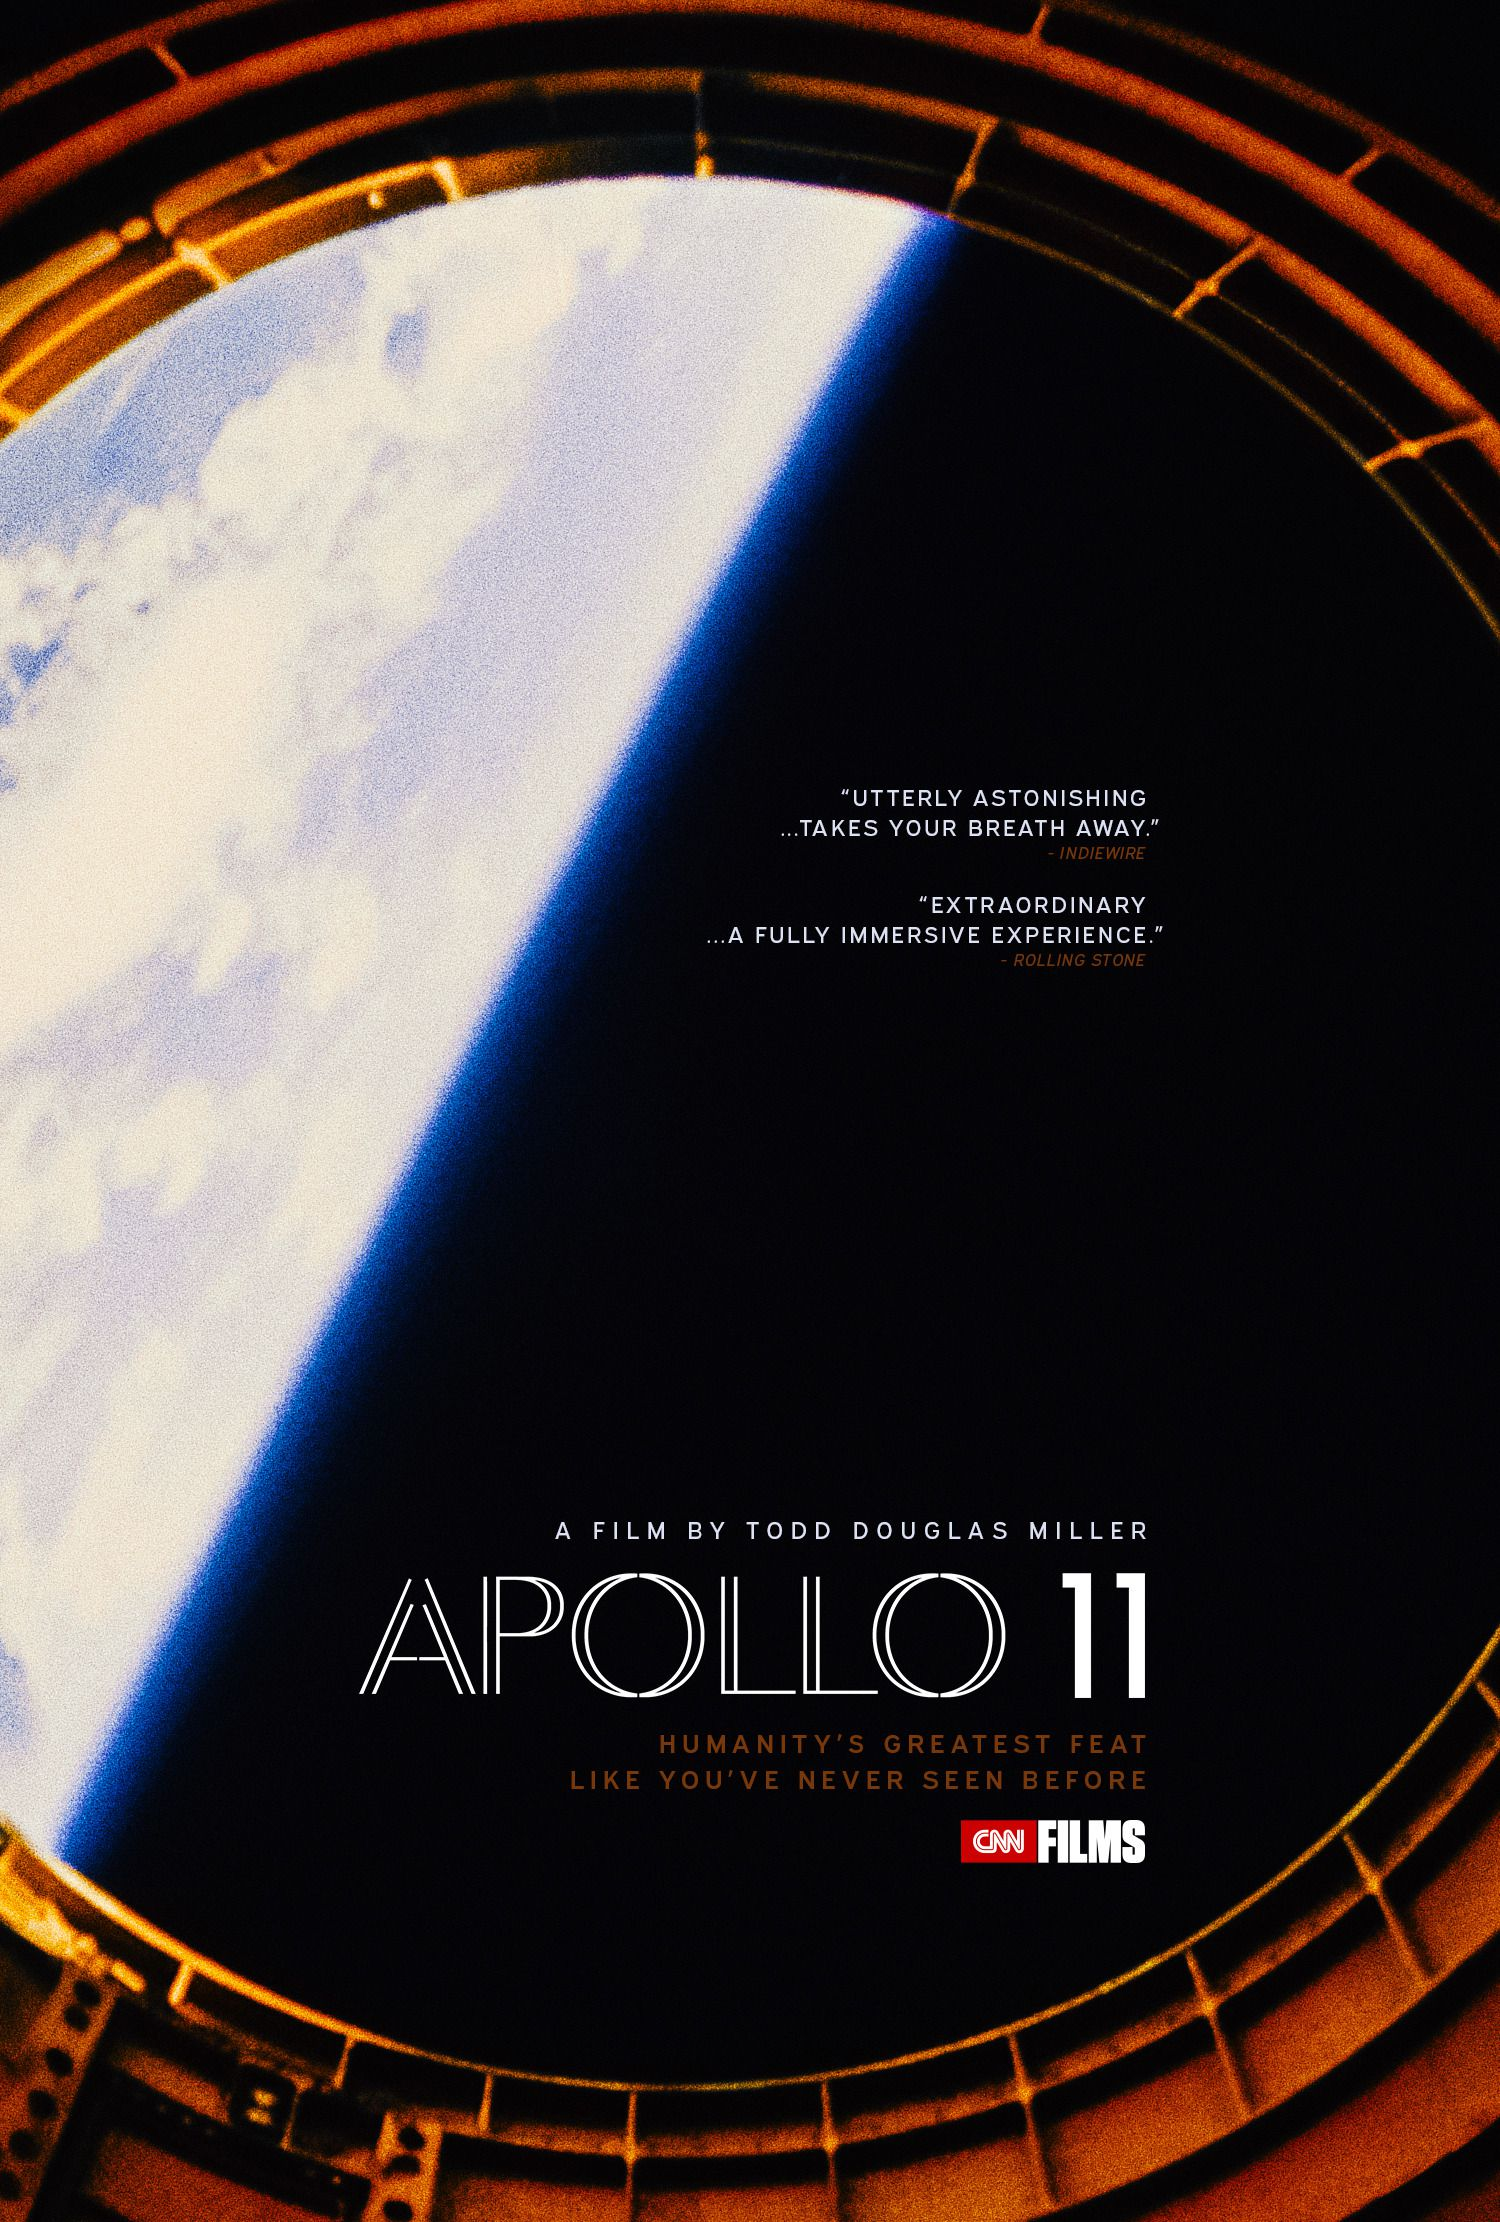 Apollo 11 2019 Humanity's greatest feat like you've never seen before - poster